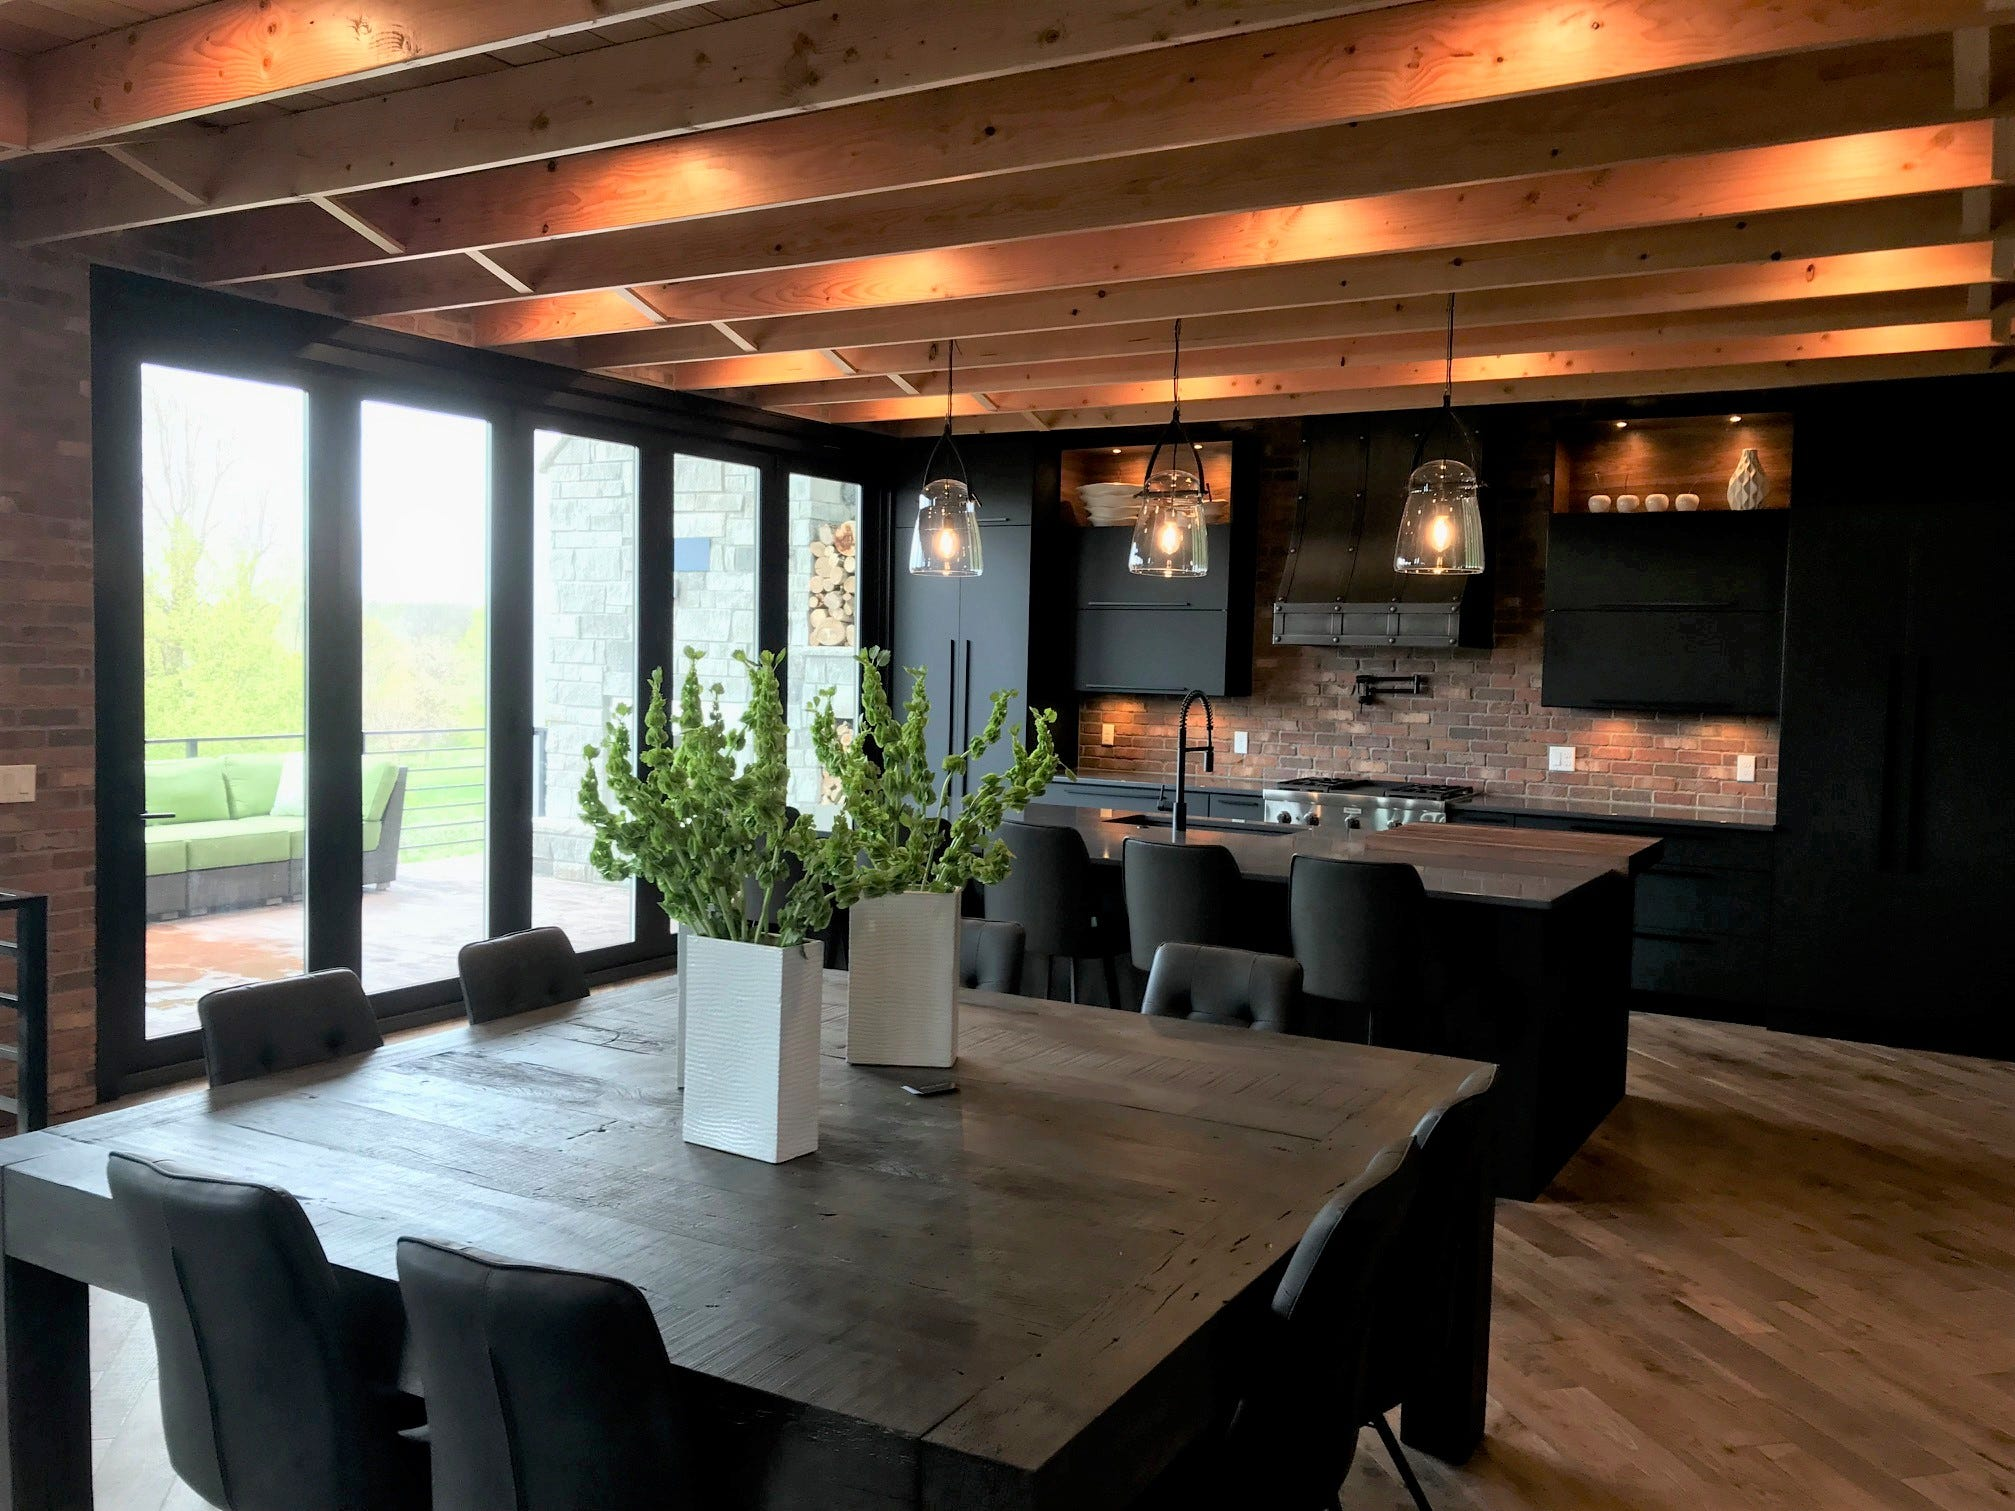 This 6,415-square-foot home at 909 S. Torrey Pine Lane is a feature home (No. 19) on the Sioux Empire Home Builder  Association's 2019 Spring Parade of Homes. The 5-bed, 4 bath homewas built by Trademark Homes Inc.